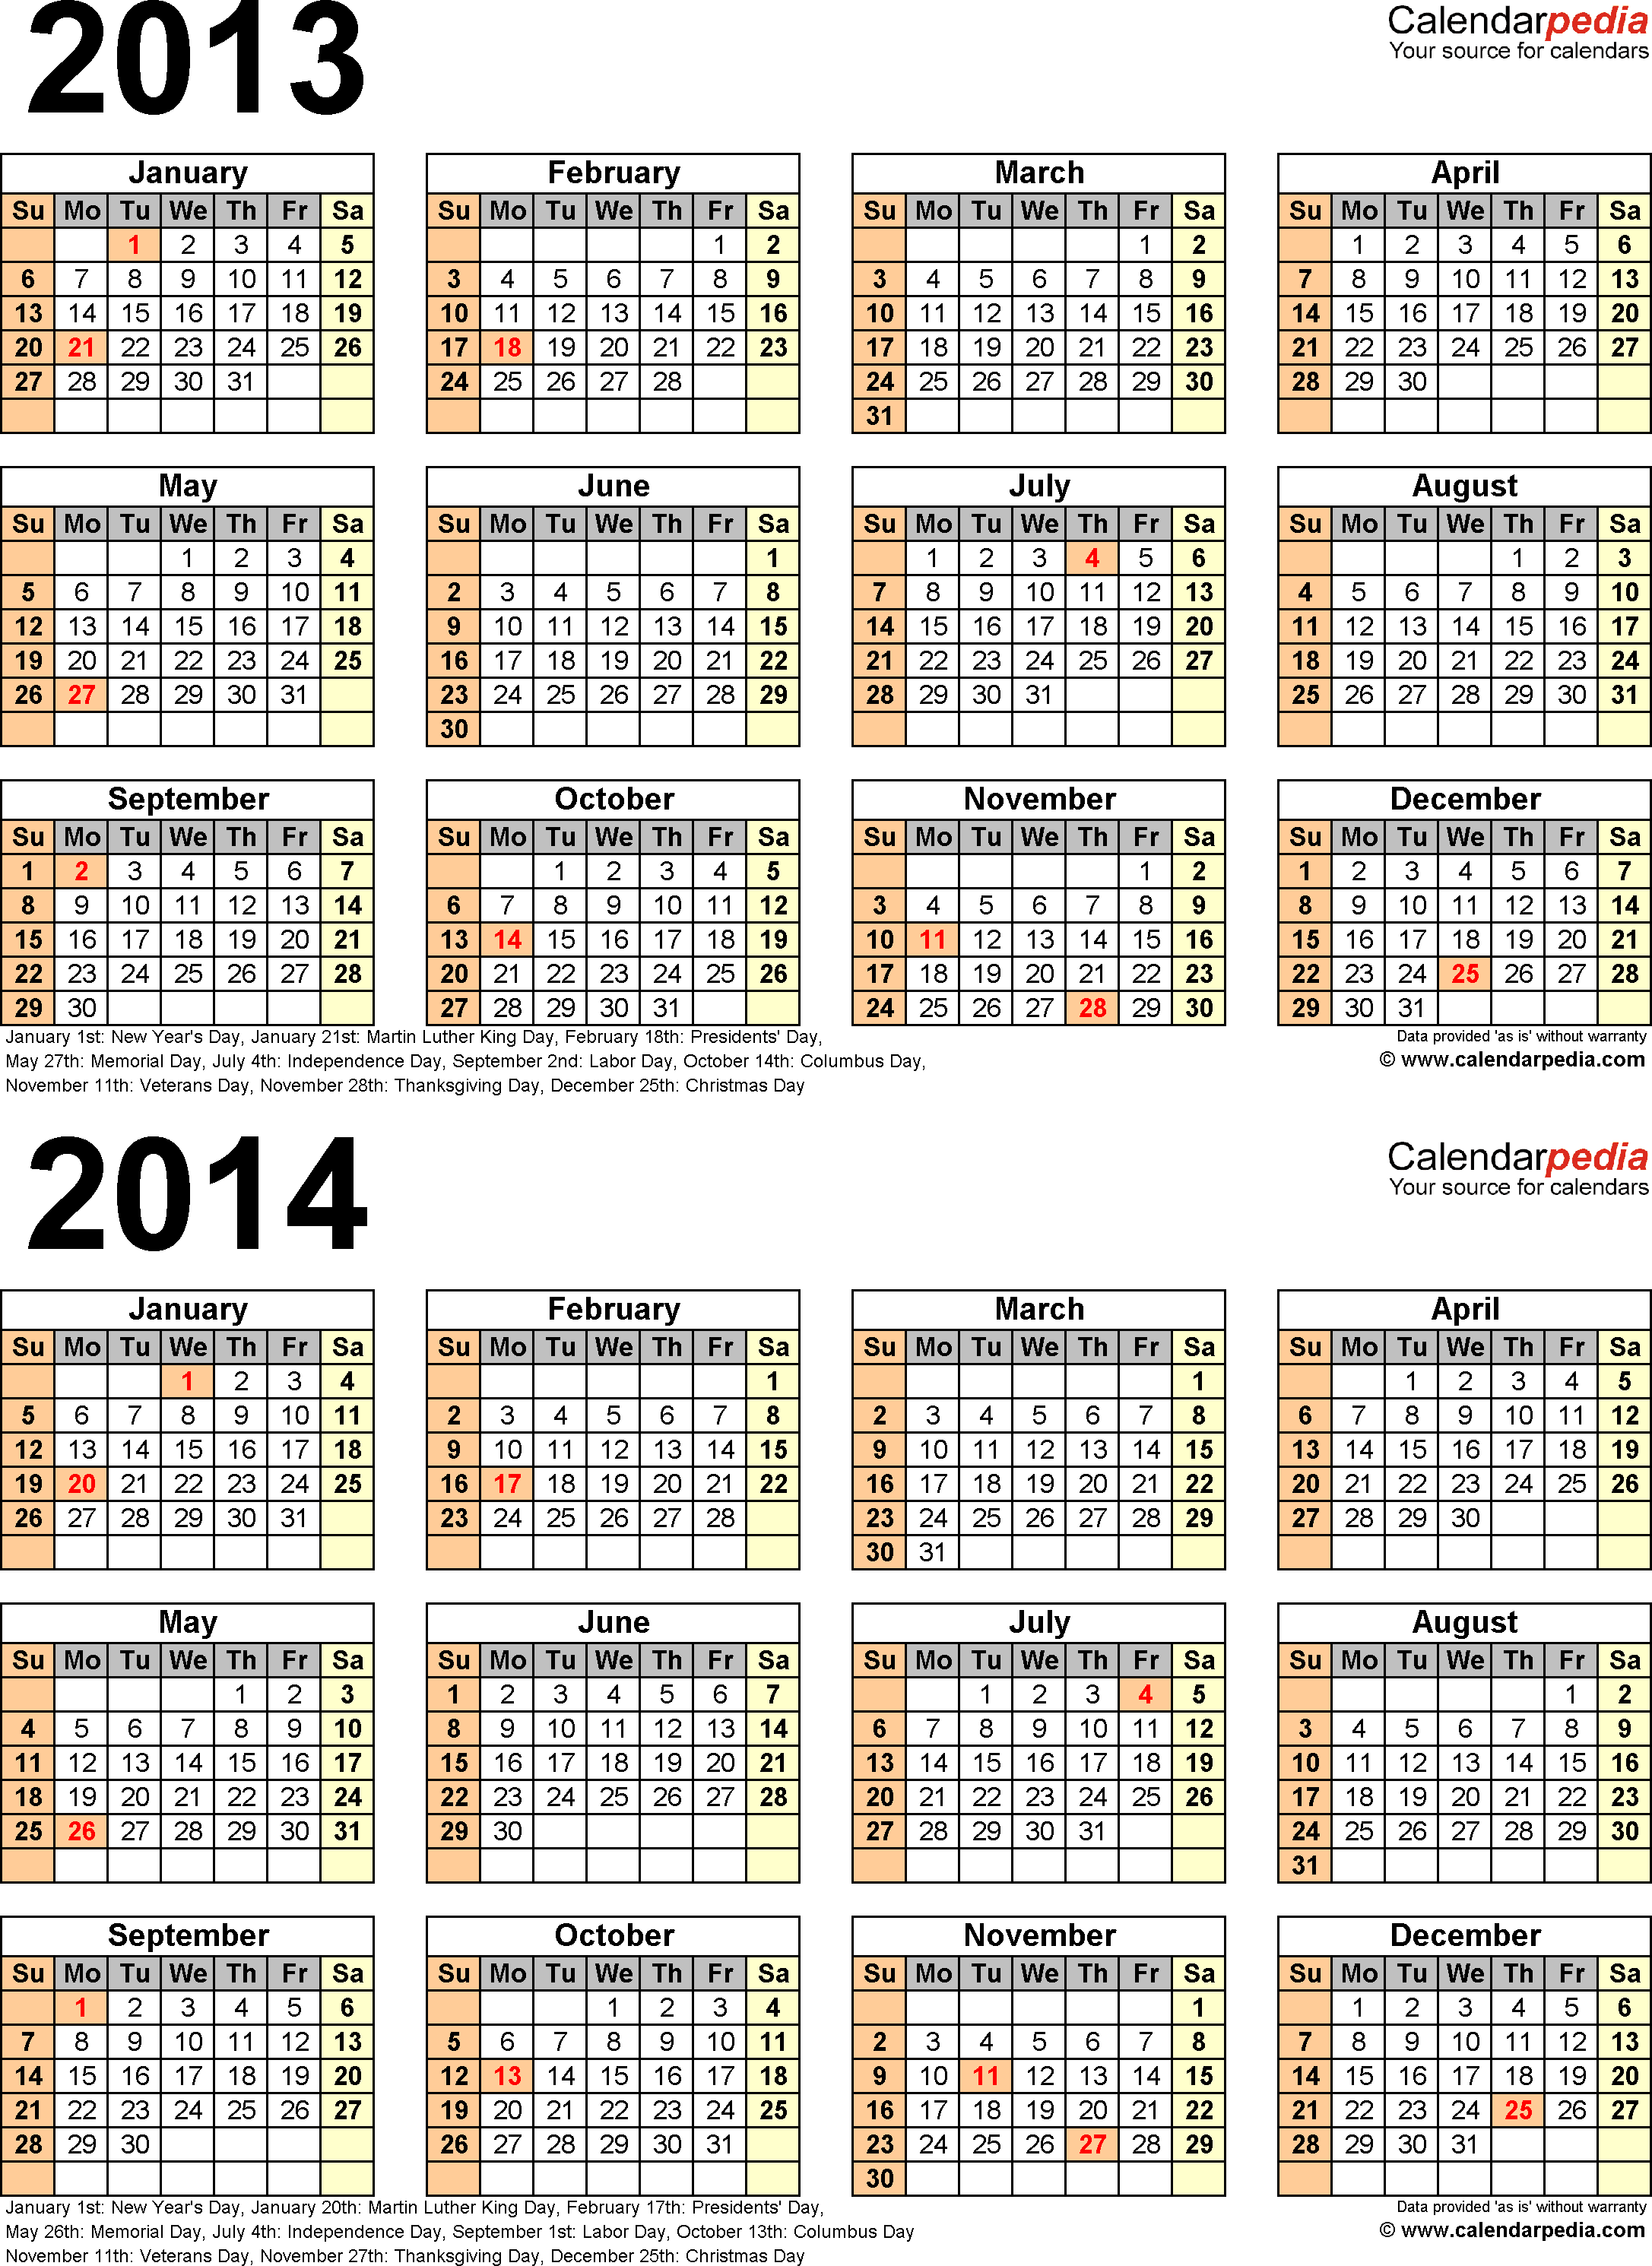 Download Template 4: Microsoft Excel template for two year calendar 2013/2014 (portrait orientation, 1 page, years stacked)